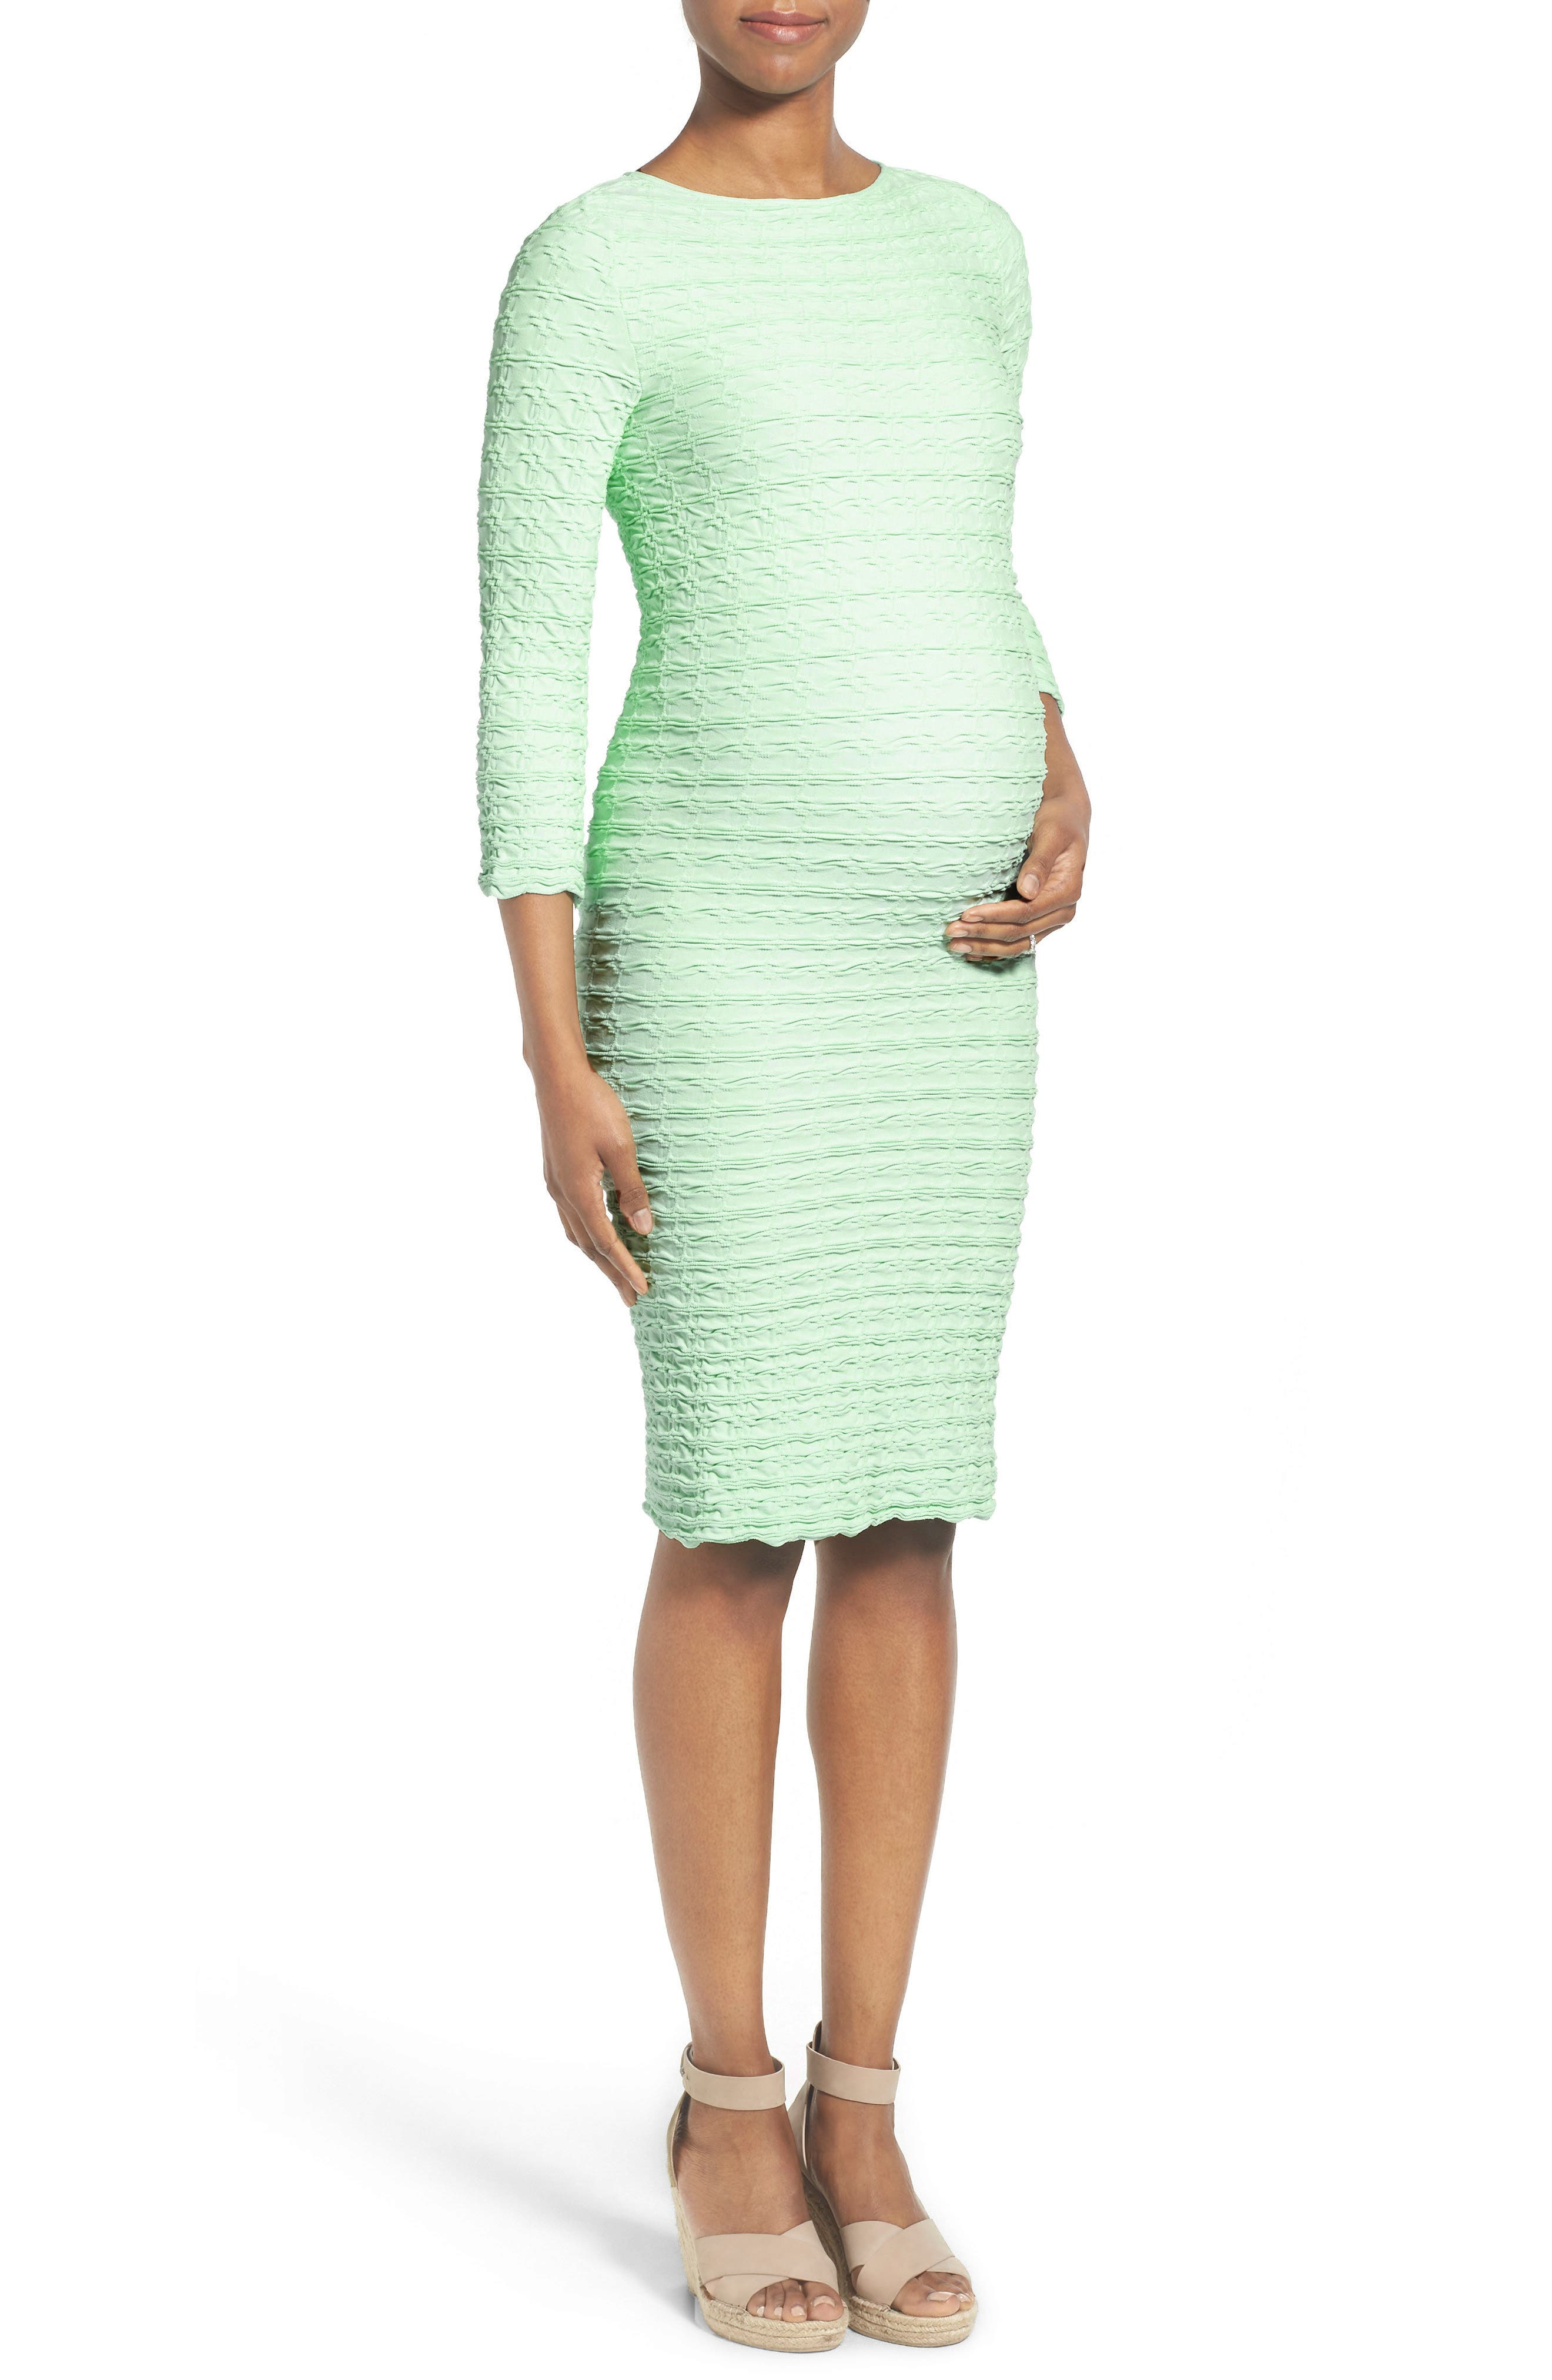 'Crinkle' Maternity Dress,                             Alternate thumbnail 5, color,                             115